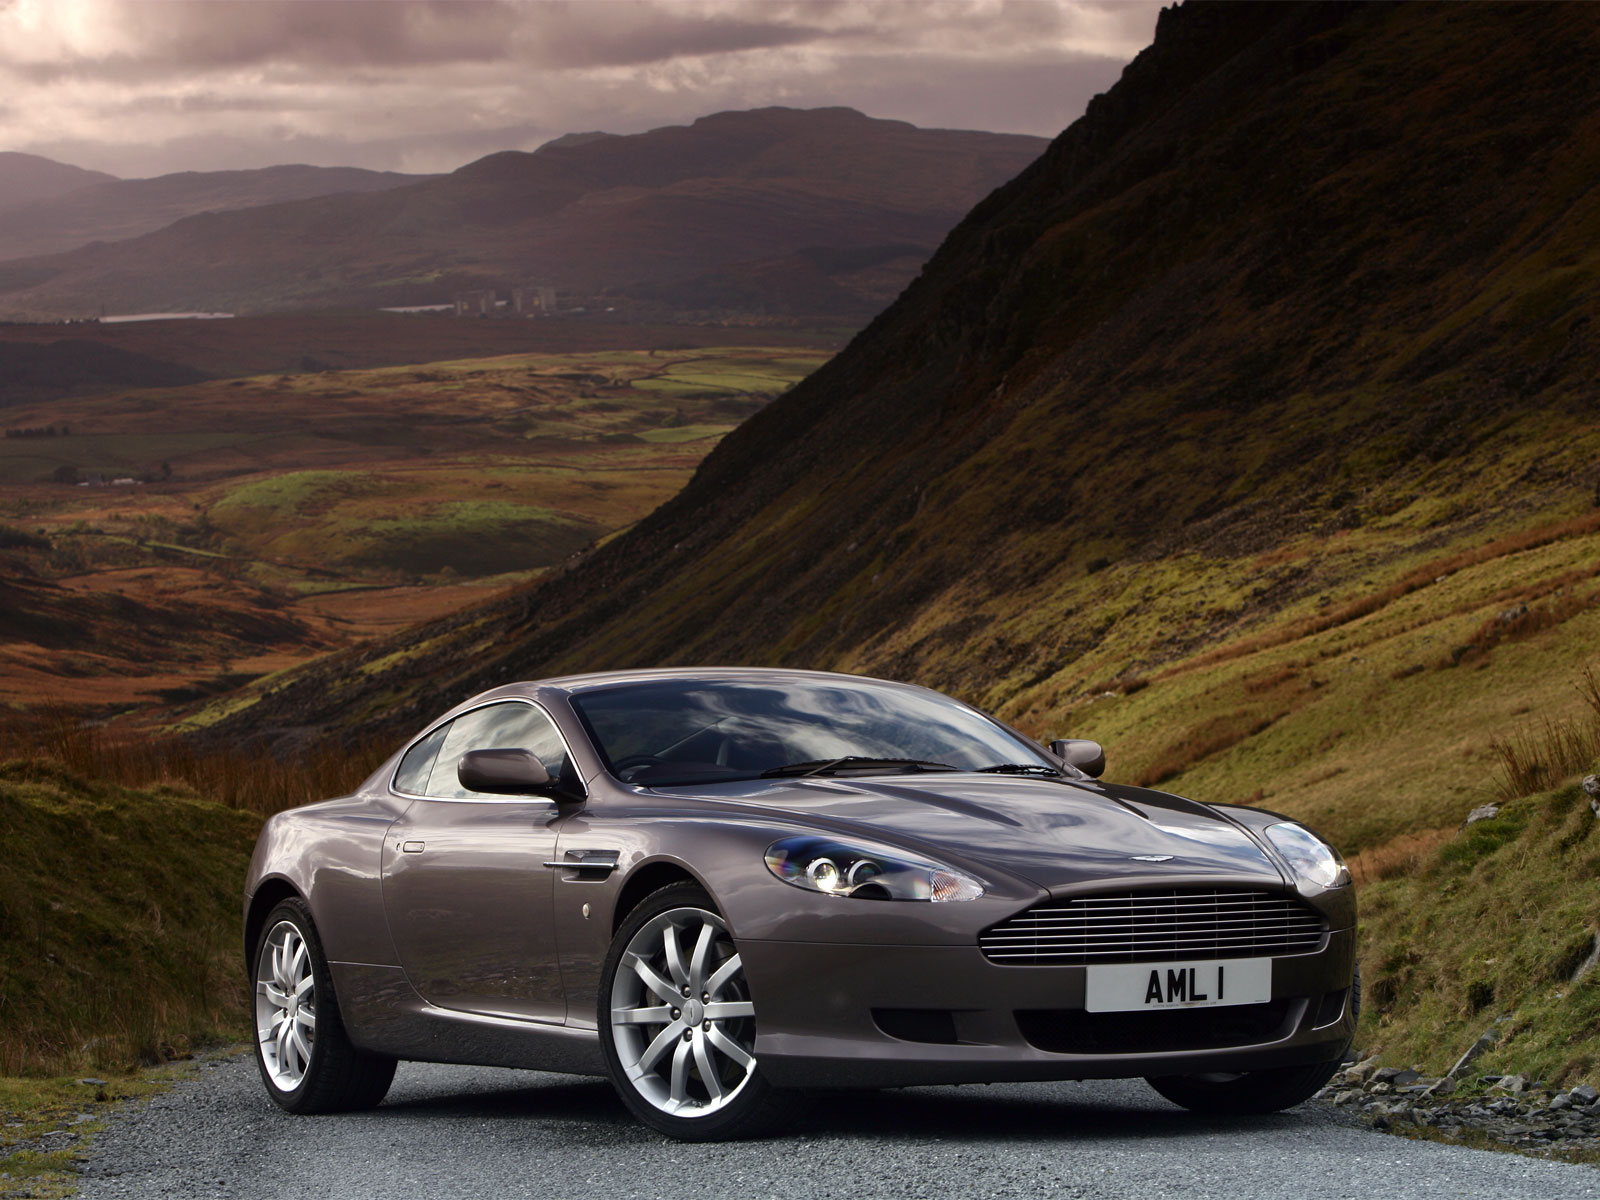 Aston Martin DB9 Silver Car Specifications Brand Model Wallpaper For Computer